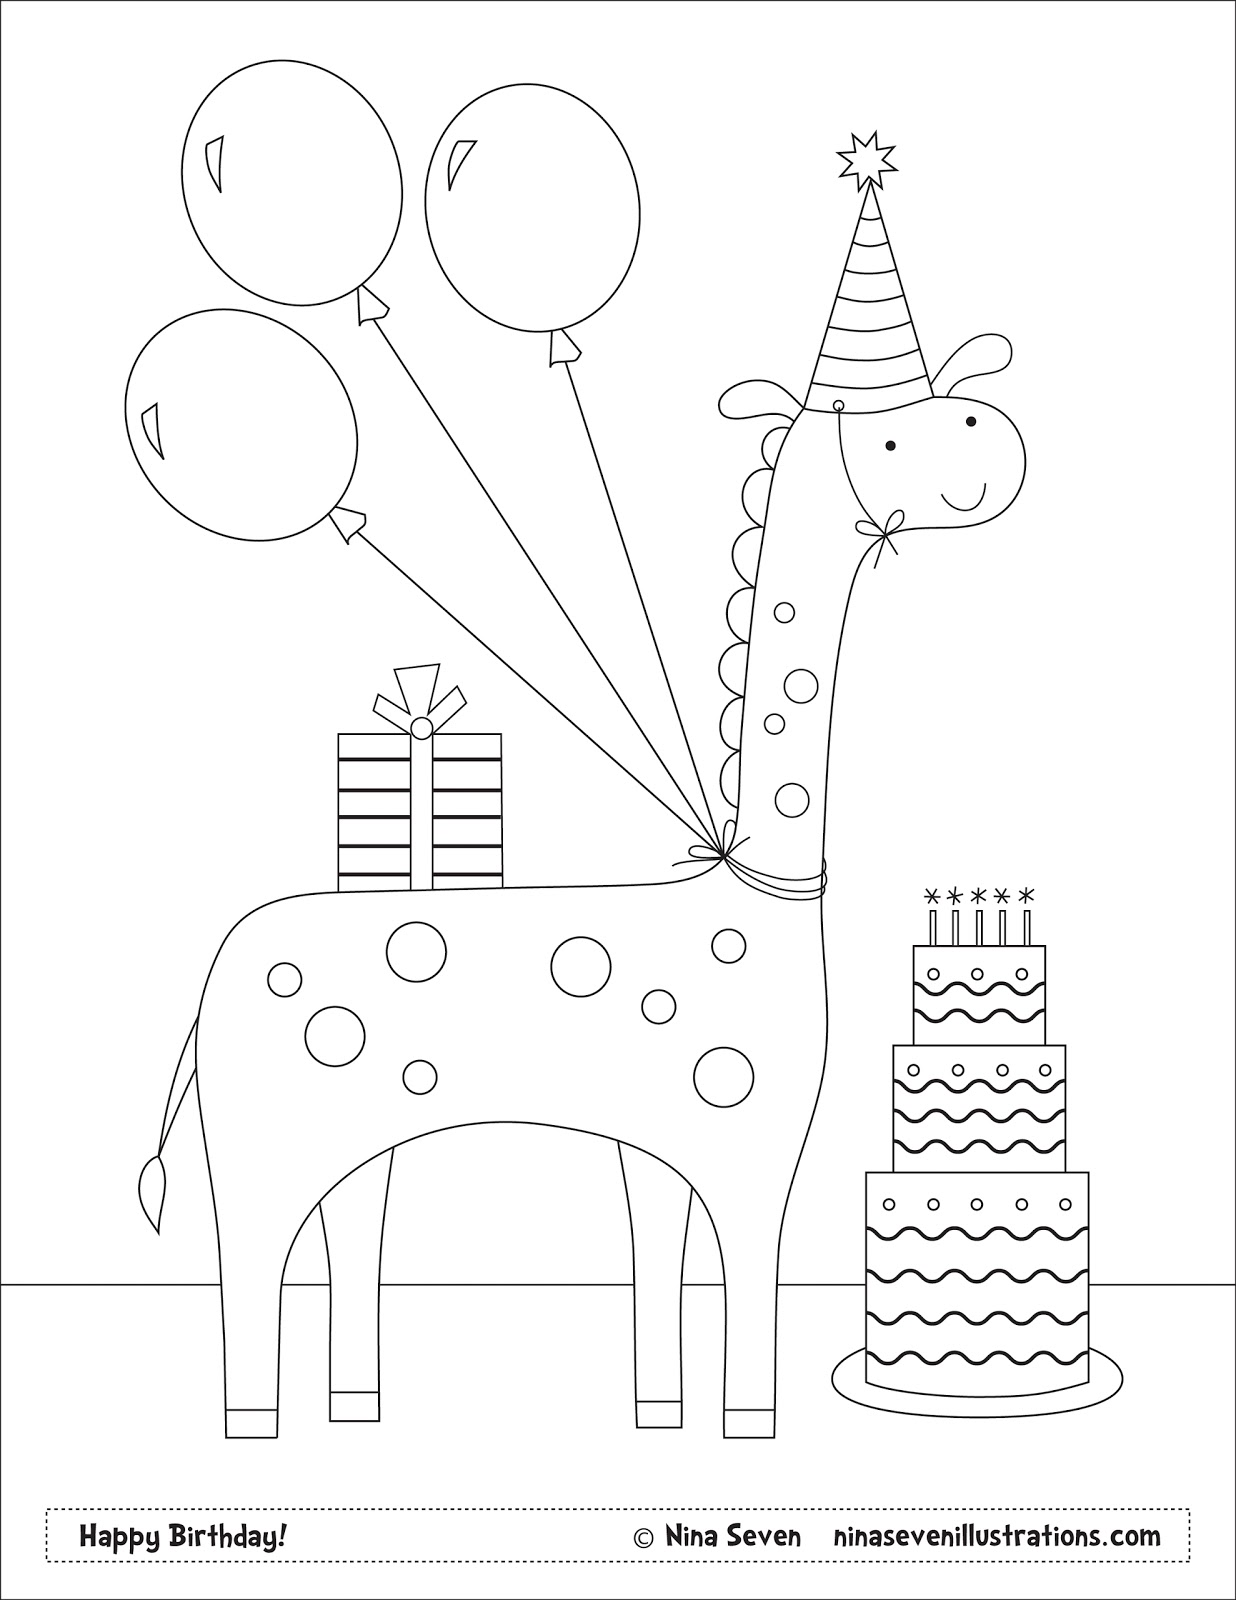 Customizable Happy Birthday Coloring Page Coloring Pages